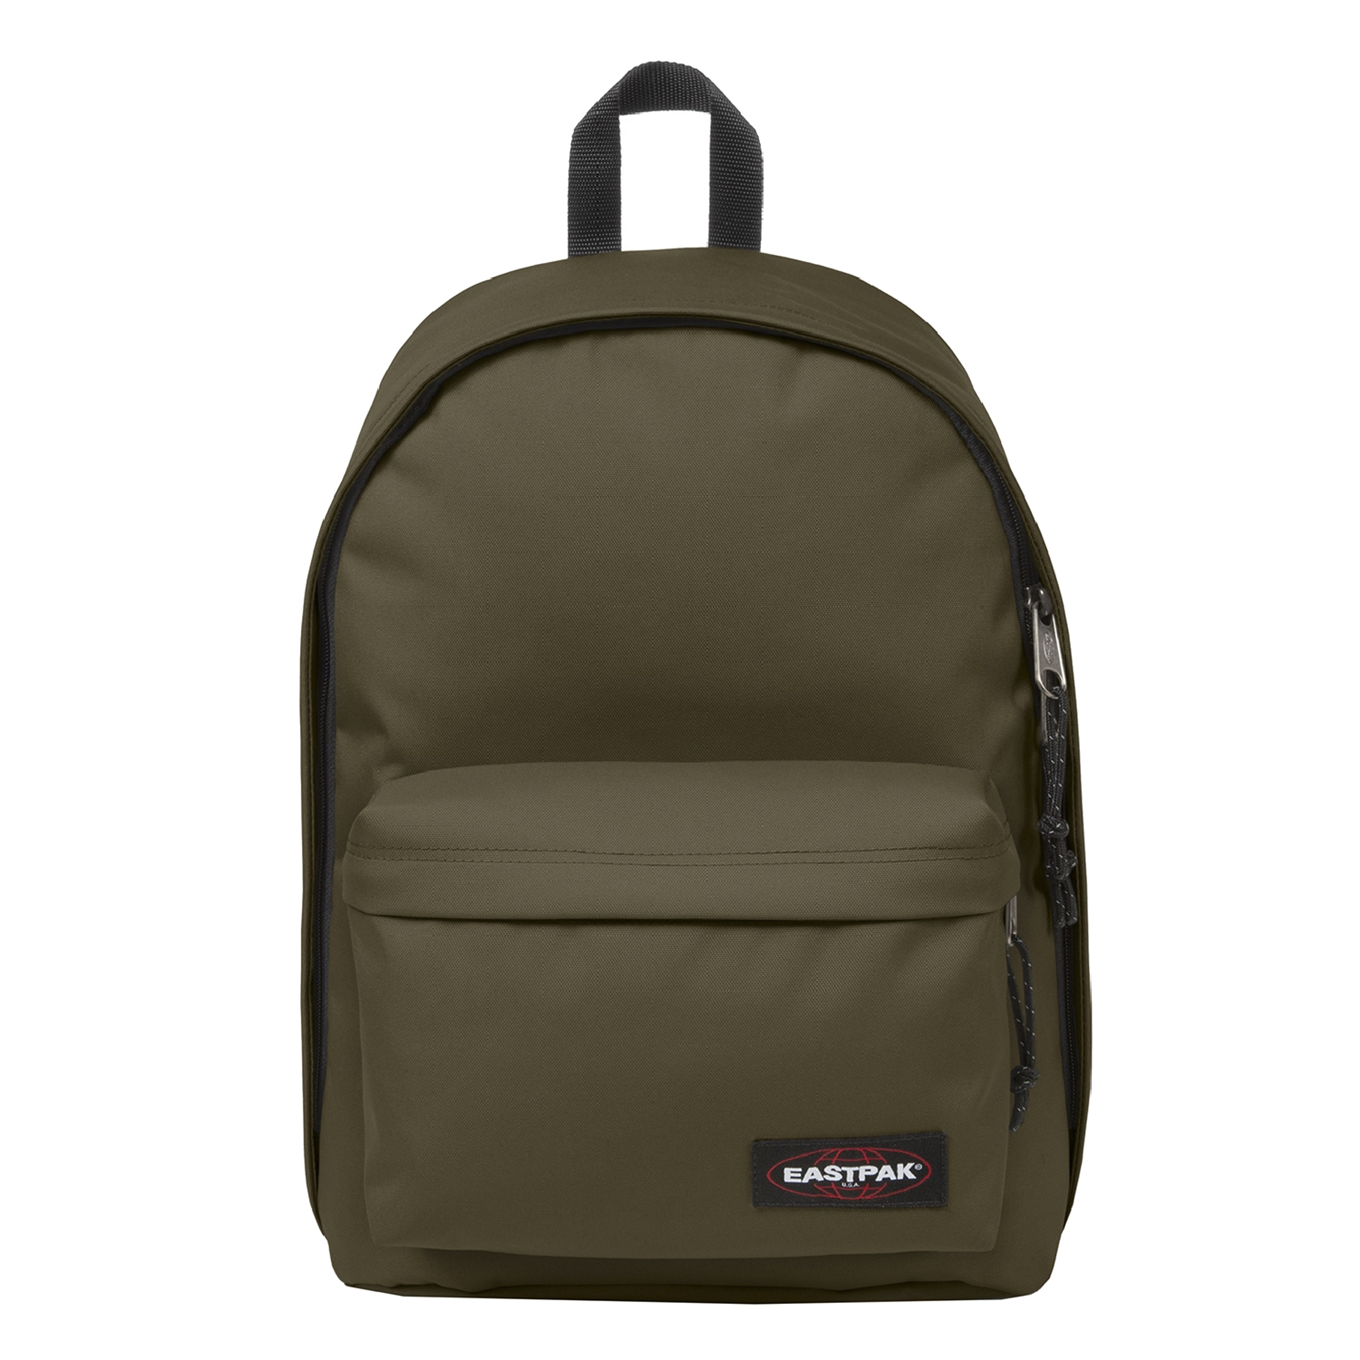 Eastpak Out Of Office Rugzak army olive